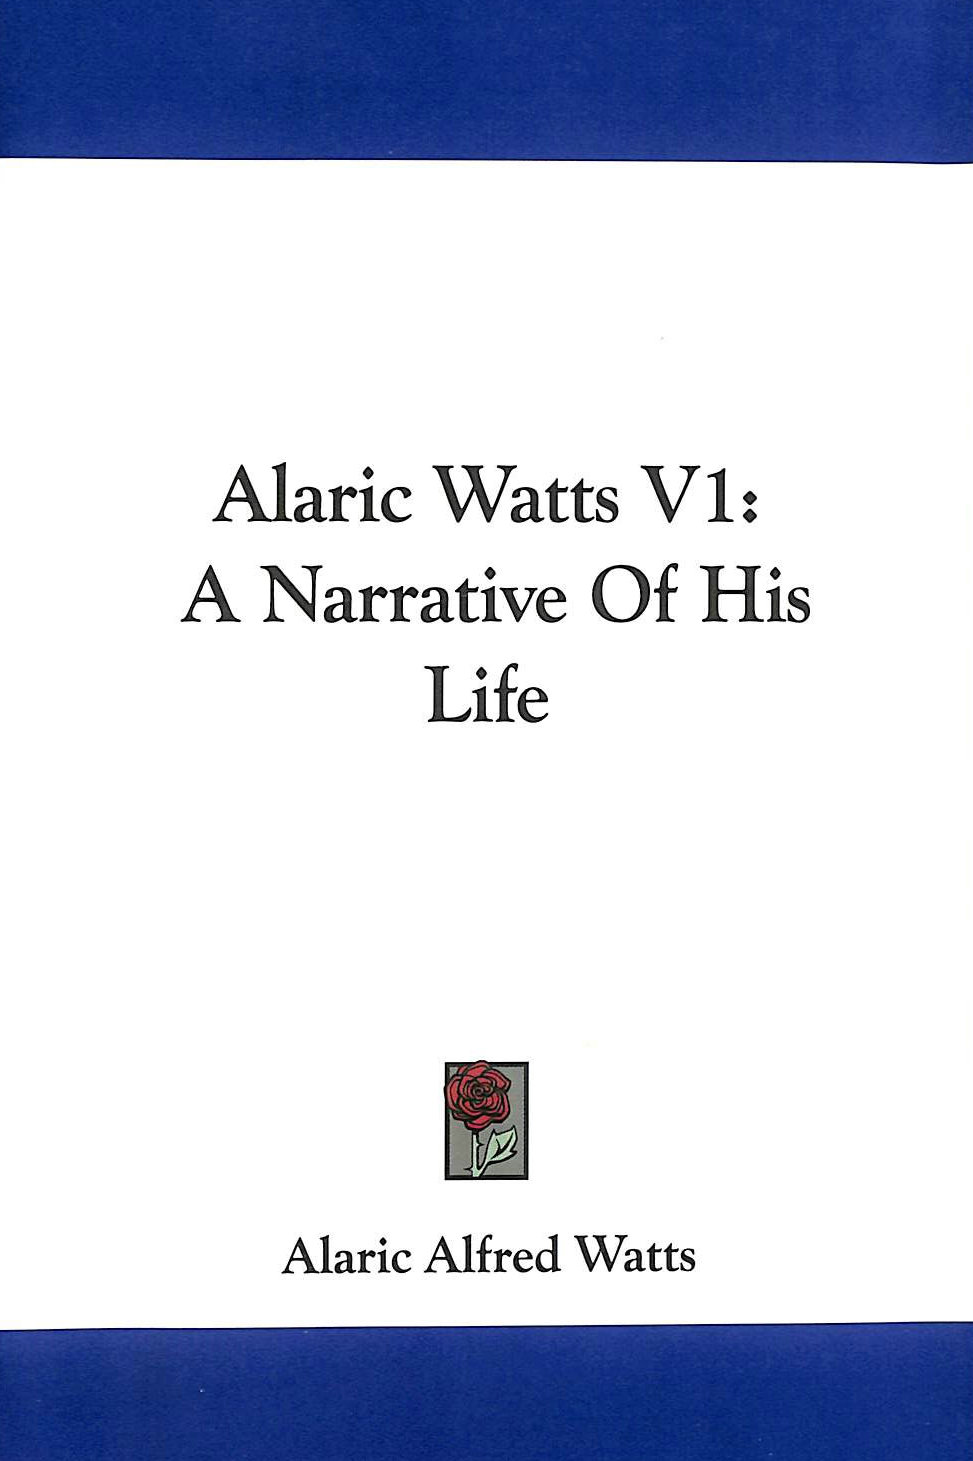 Image for Alaric Watts V1: A Narrative of His Life